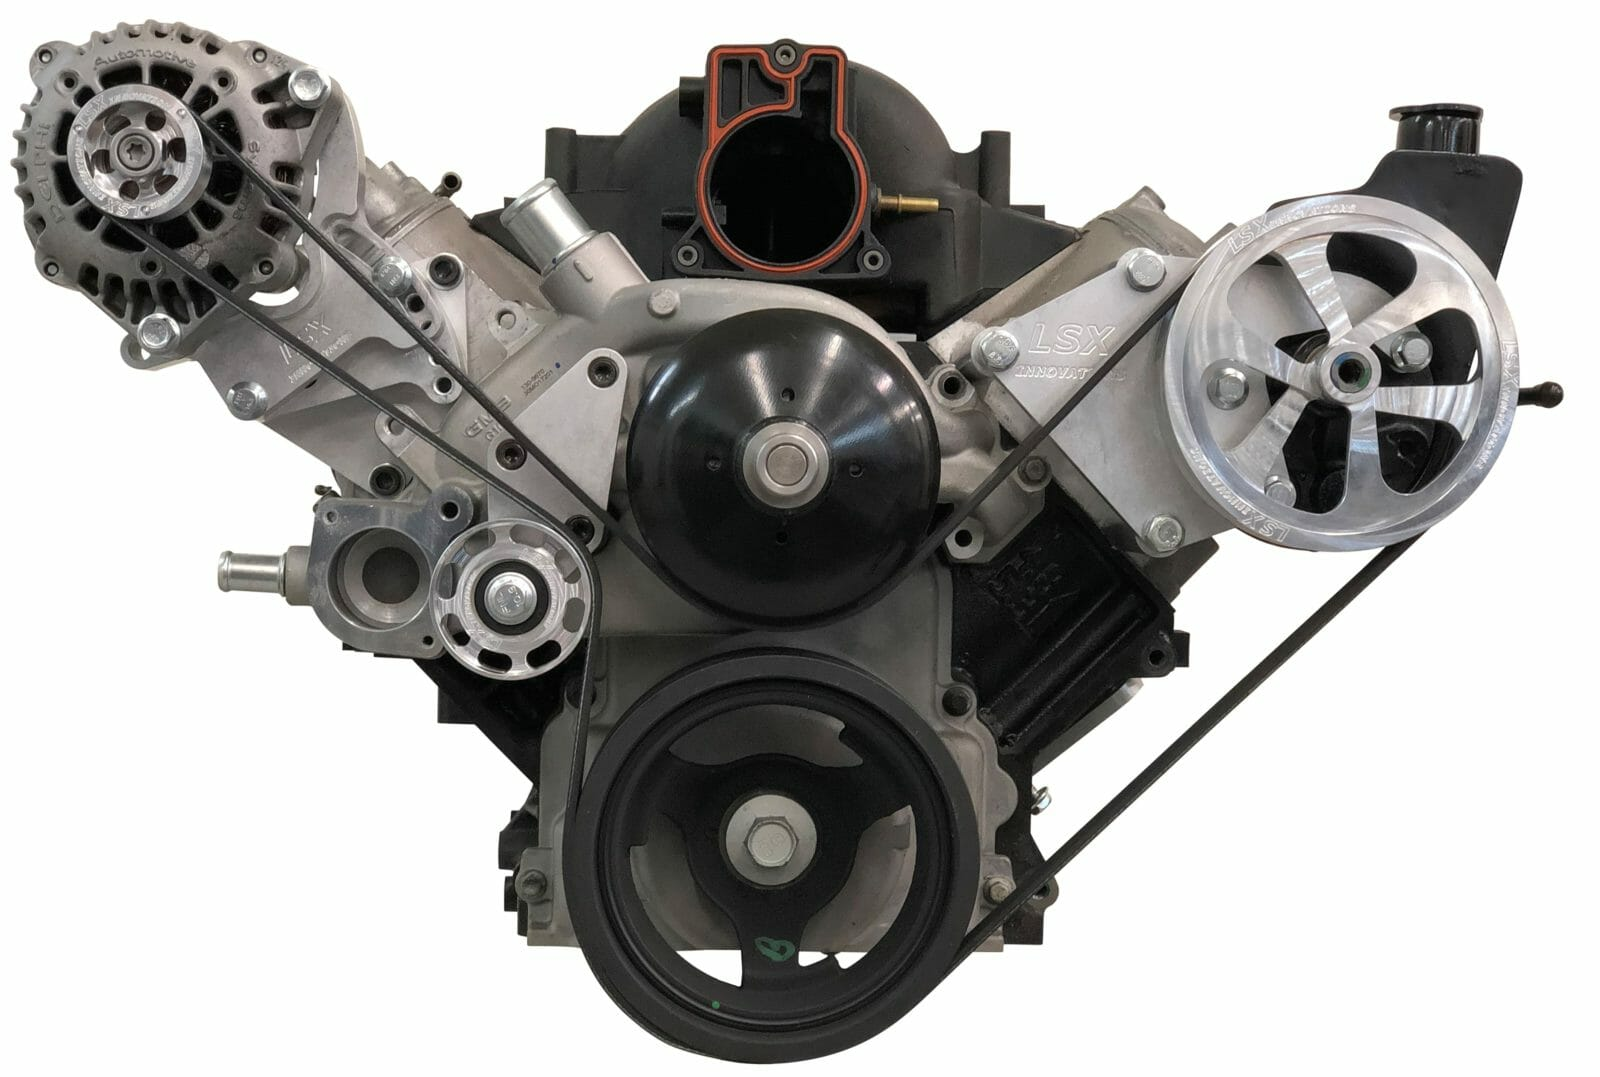 Easy Carbureted Ls Alternator Wiring For Your Ls Swap Manual Guide